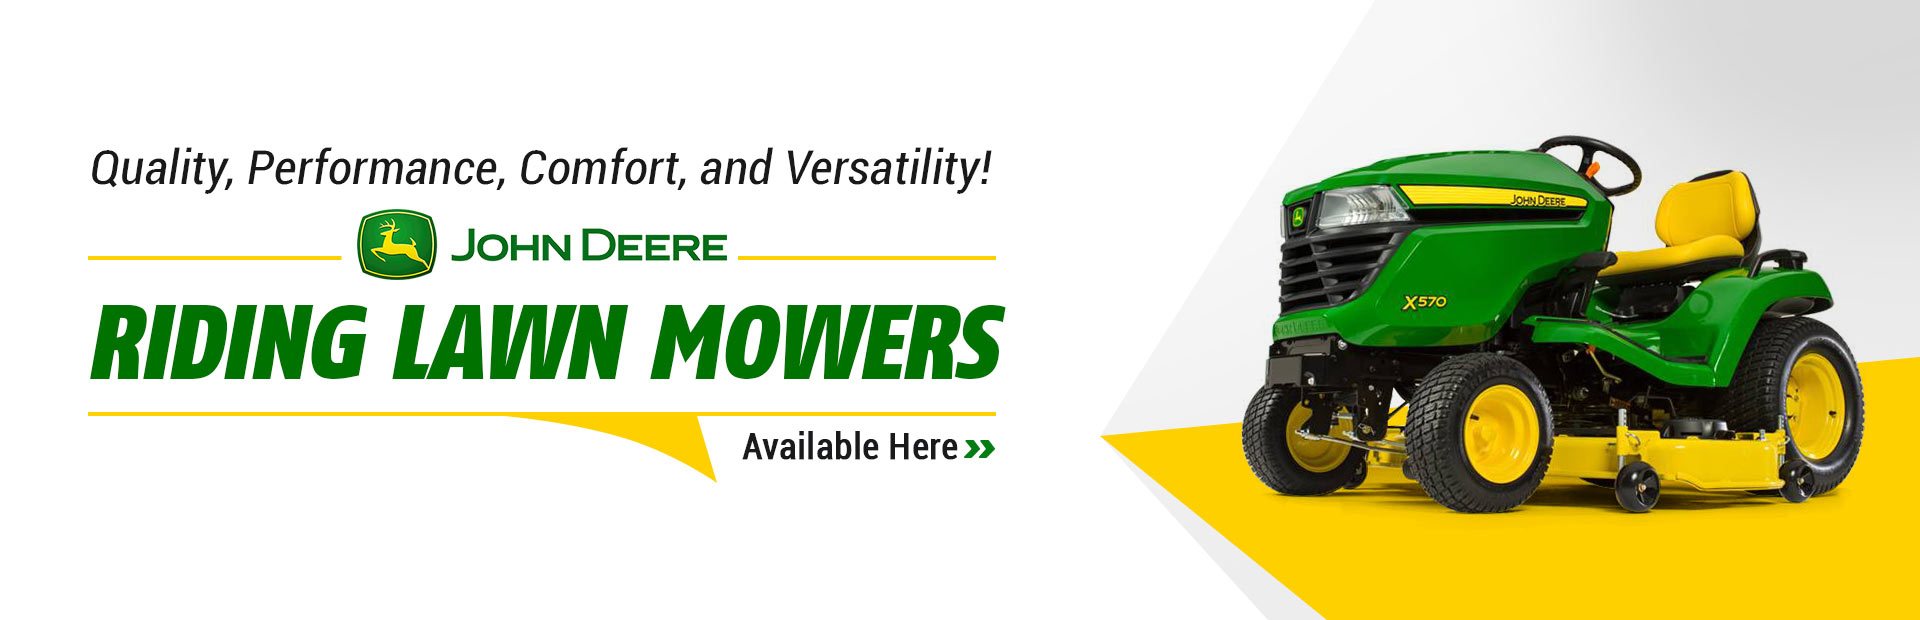 John Deere Riding Lawn Mowers: Click here to view the models.